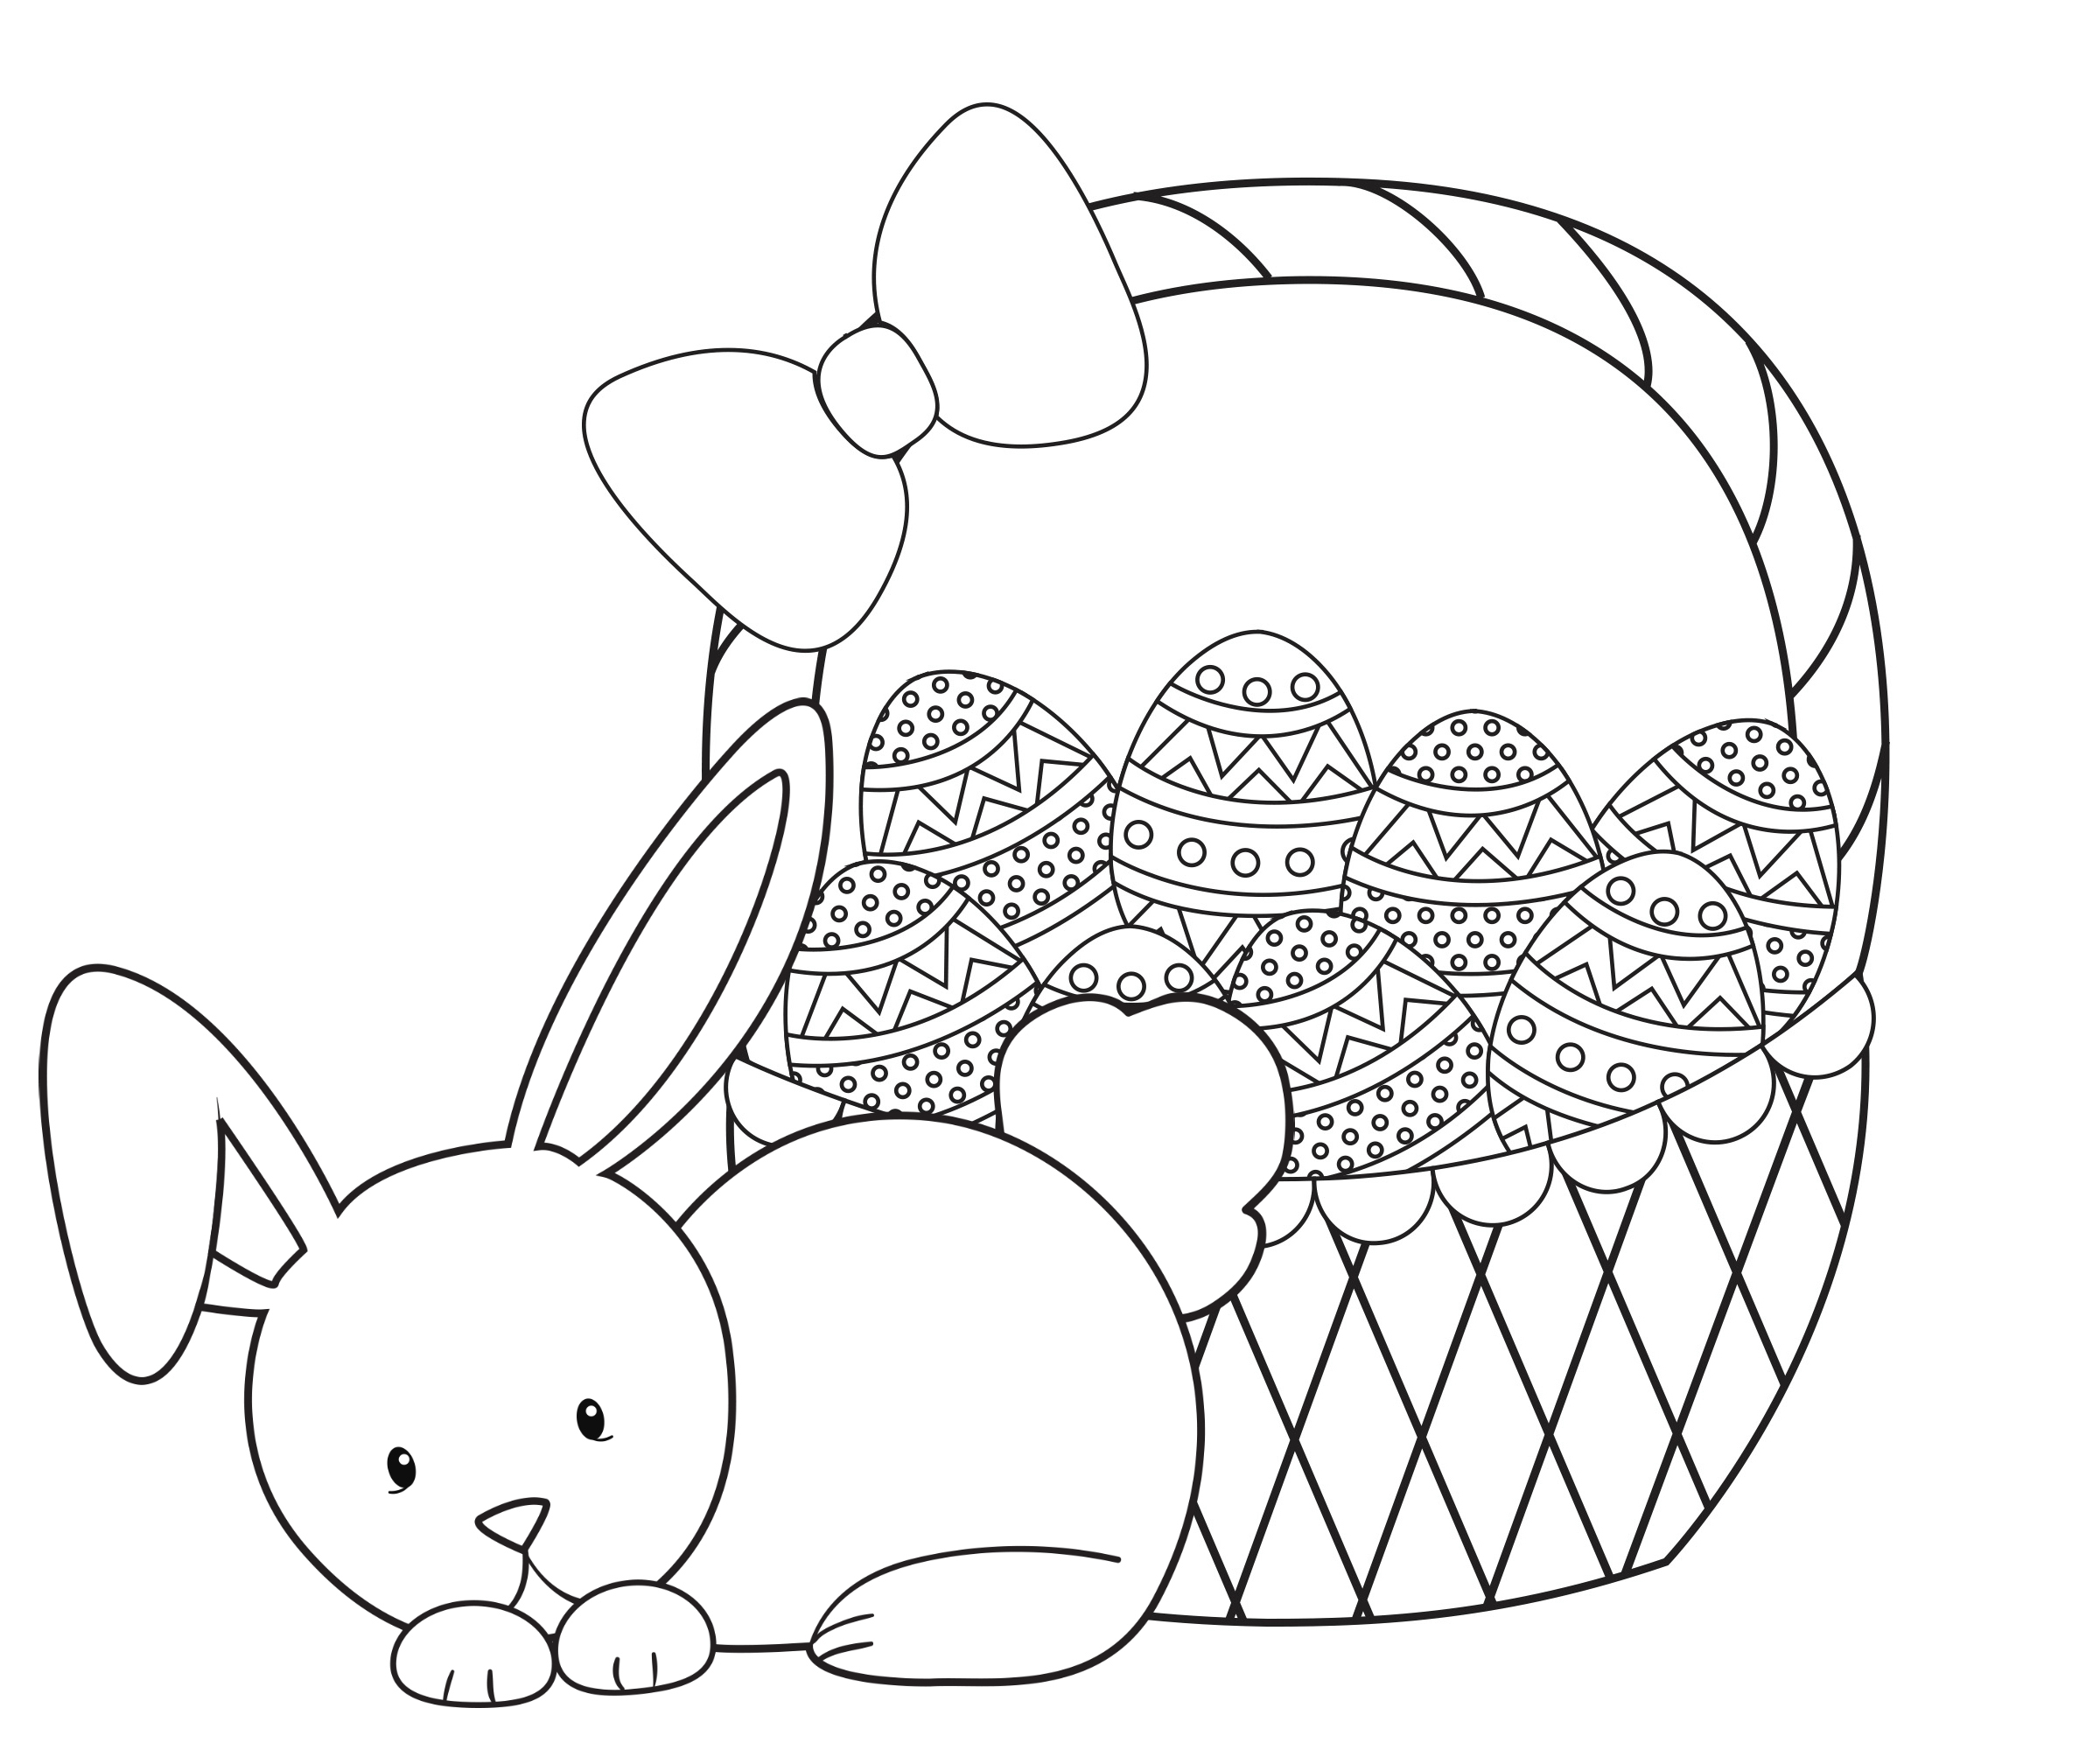 Easter Coloring Pages for Kids Crazy Little Projects Printable Of Easter Basket Coloring Pages to Print Gallery